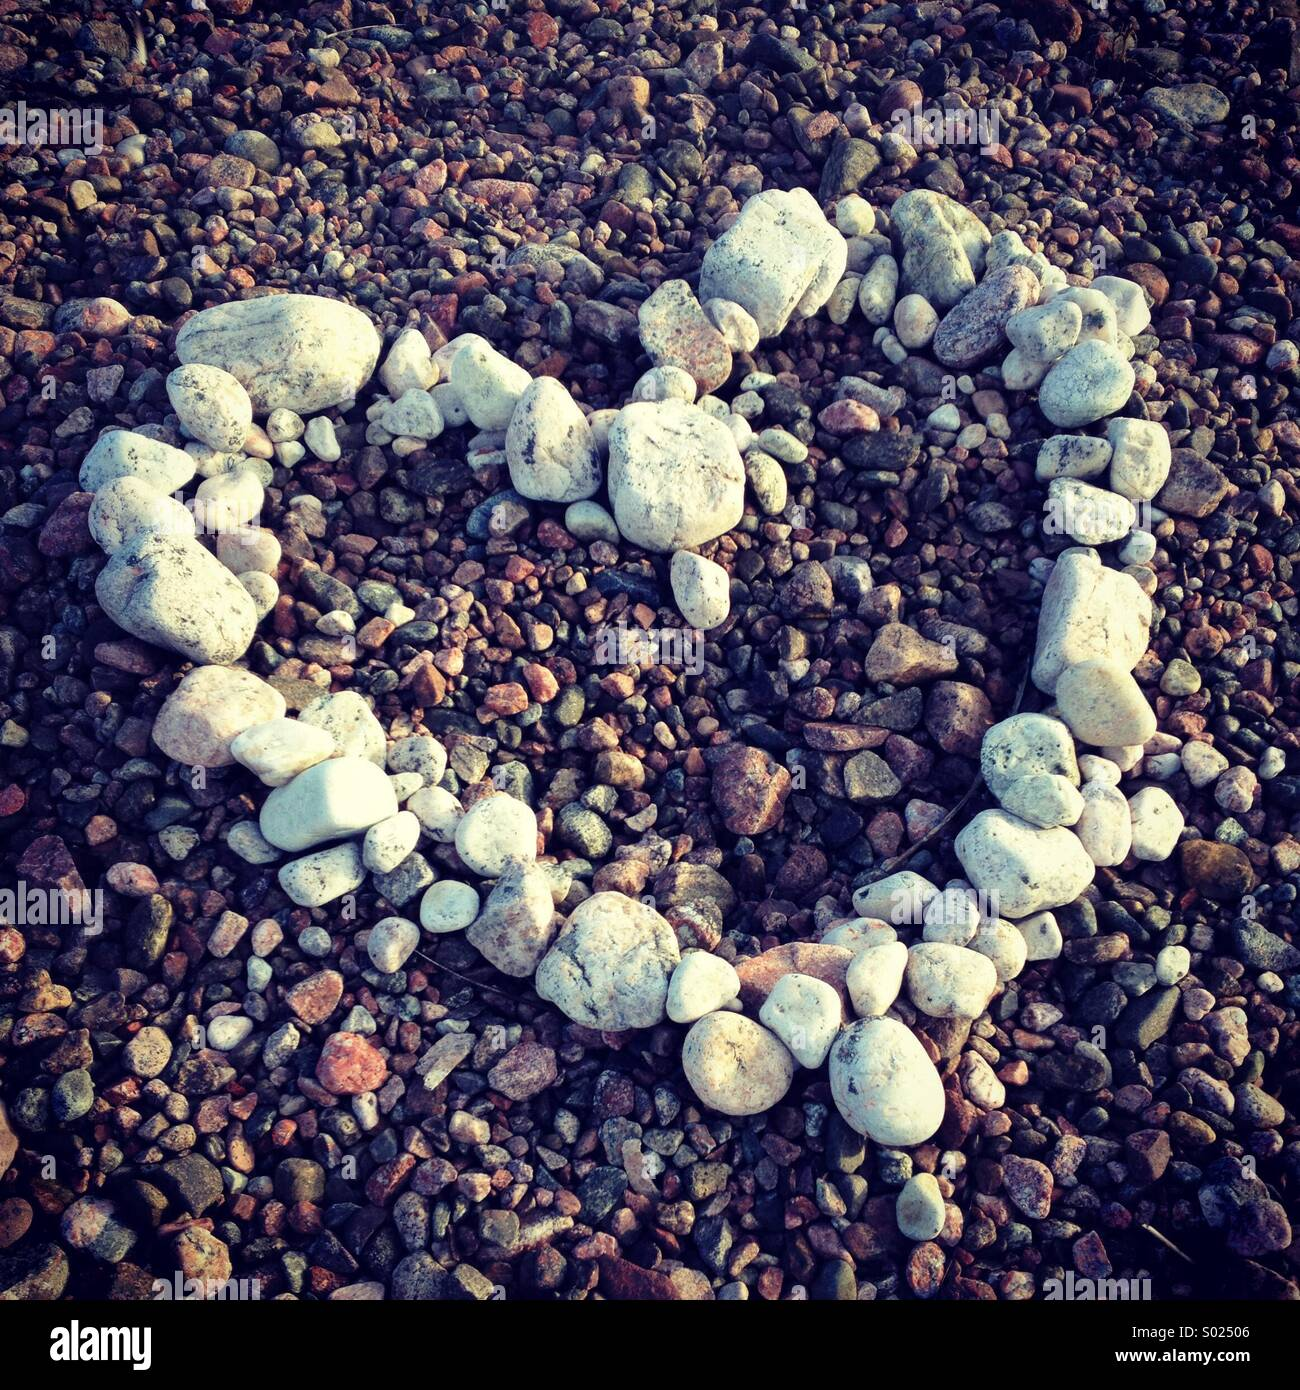 A heart made of white stones and pebbles on a colourful beach - Stock Image